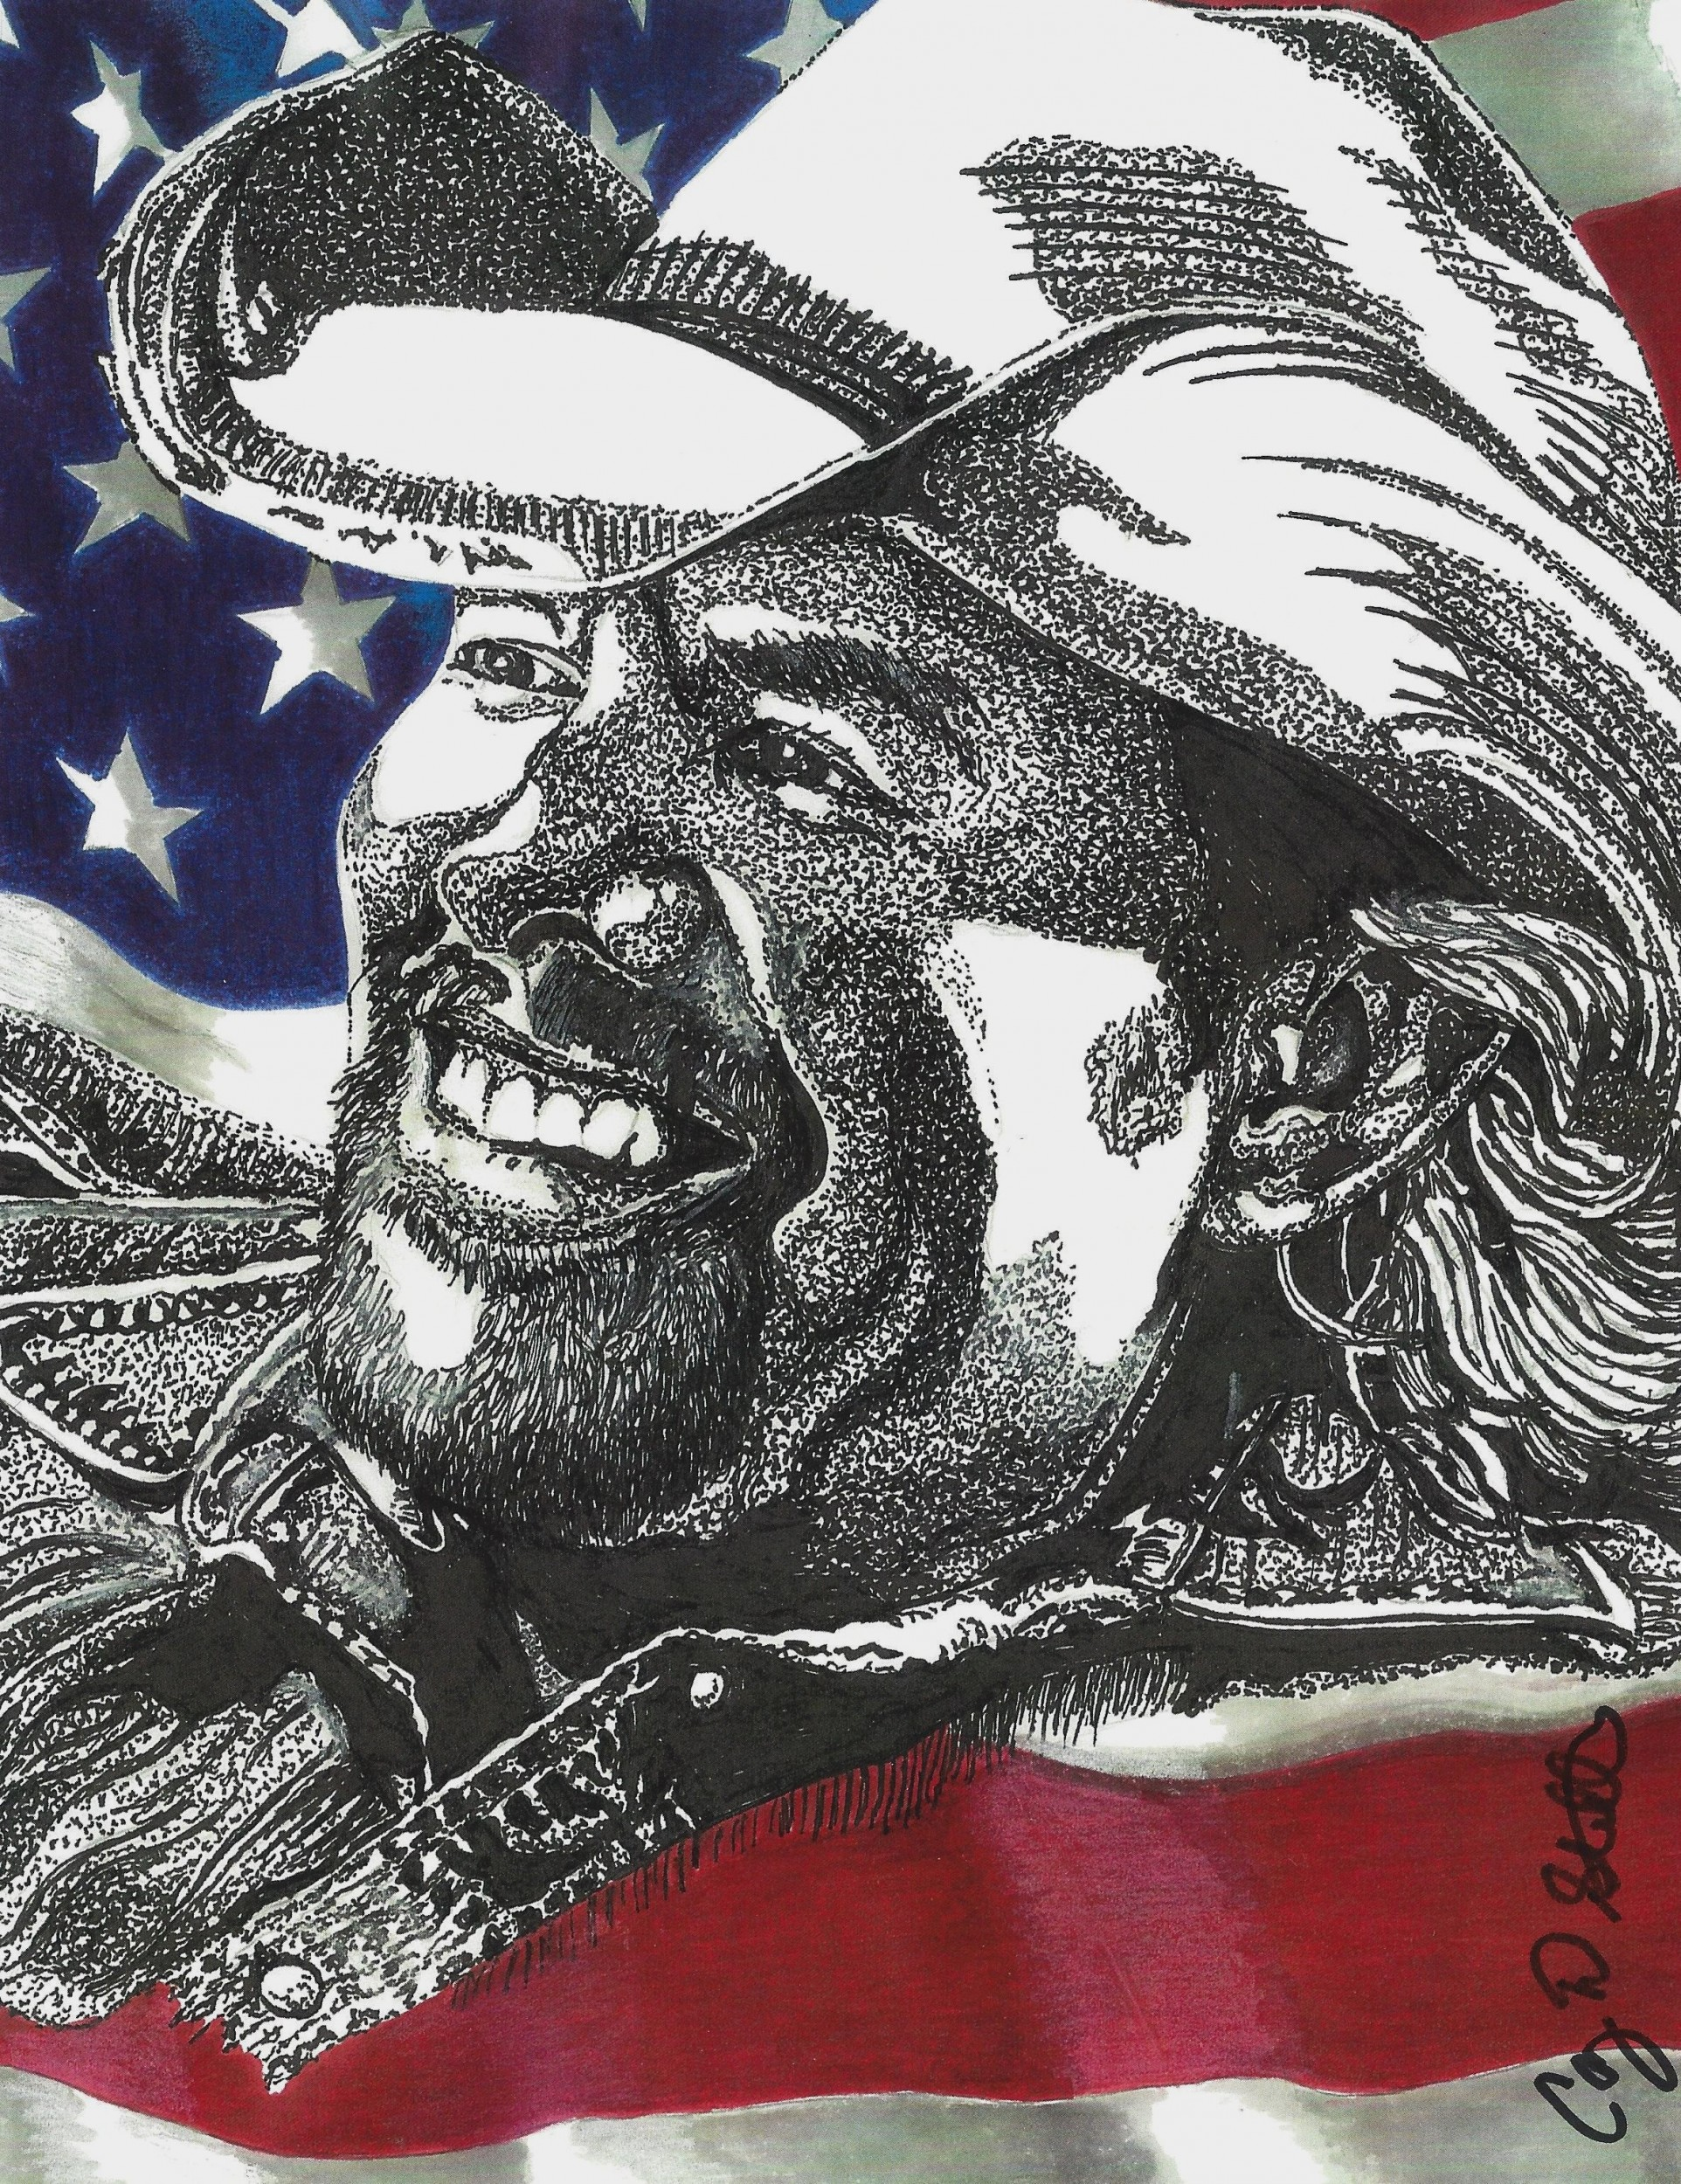 courtesy of the red white and Toby keith - courtesy of red white blue 2 chords, tabs, tablatures for guitar + toby keith song lyrics ringtone mp3.